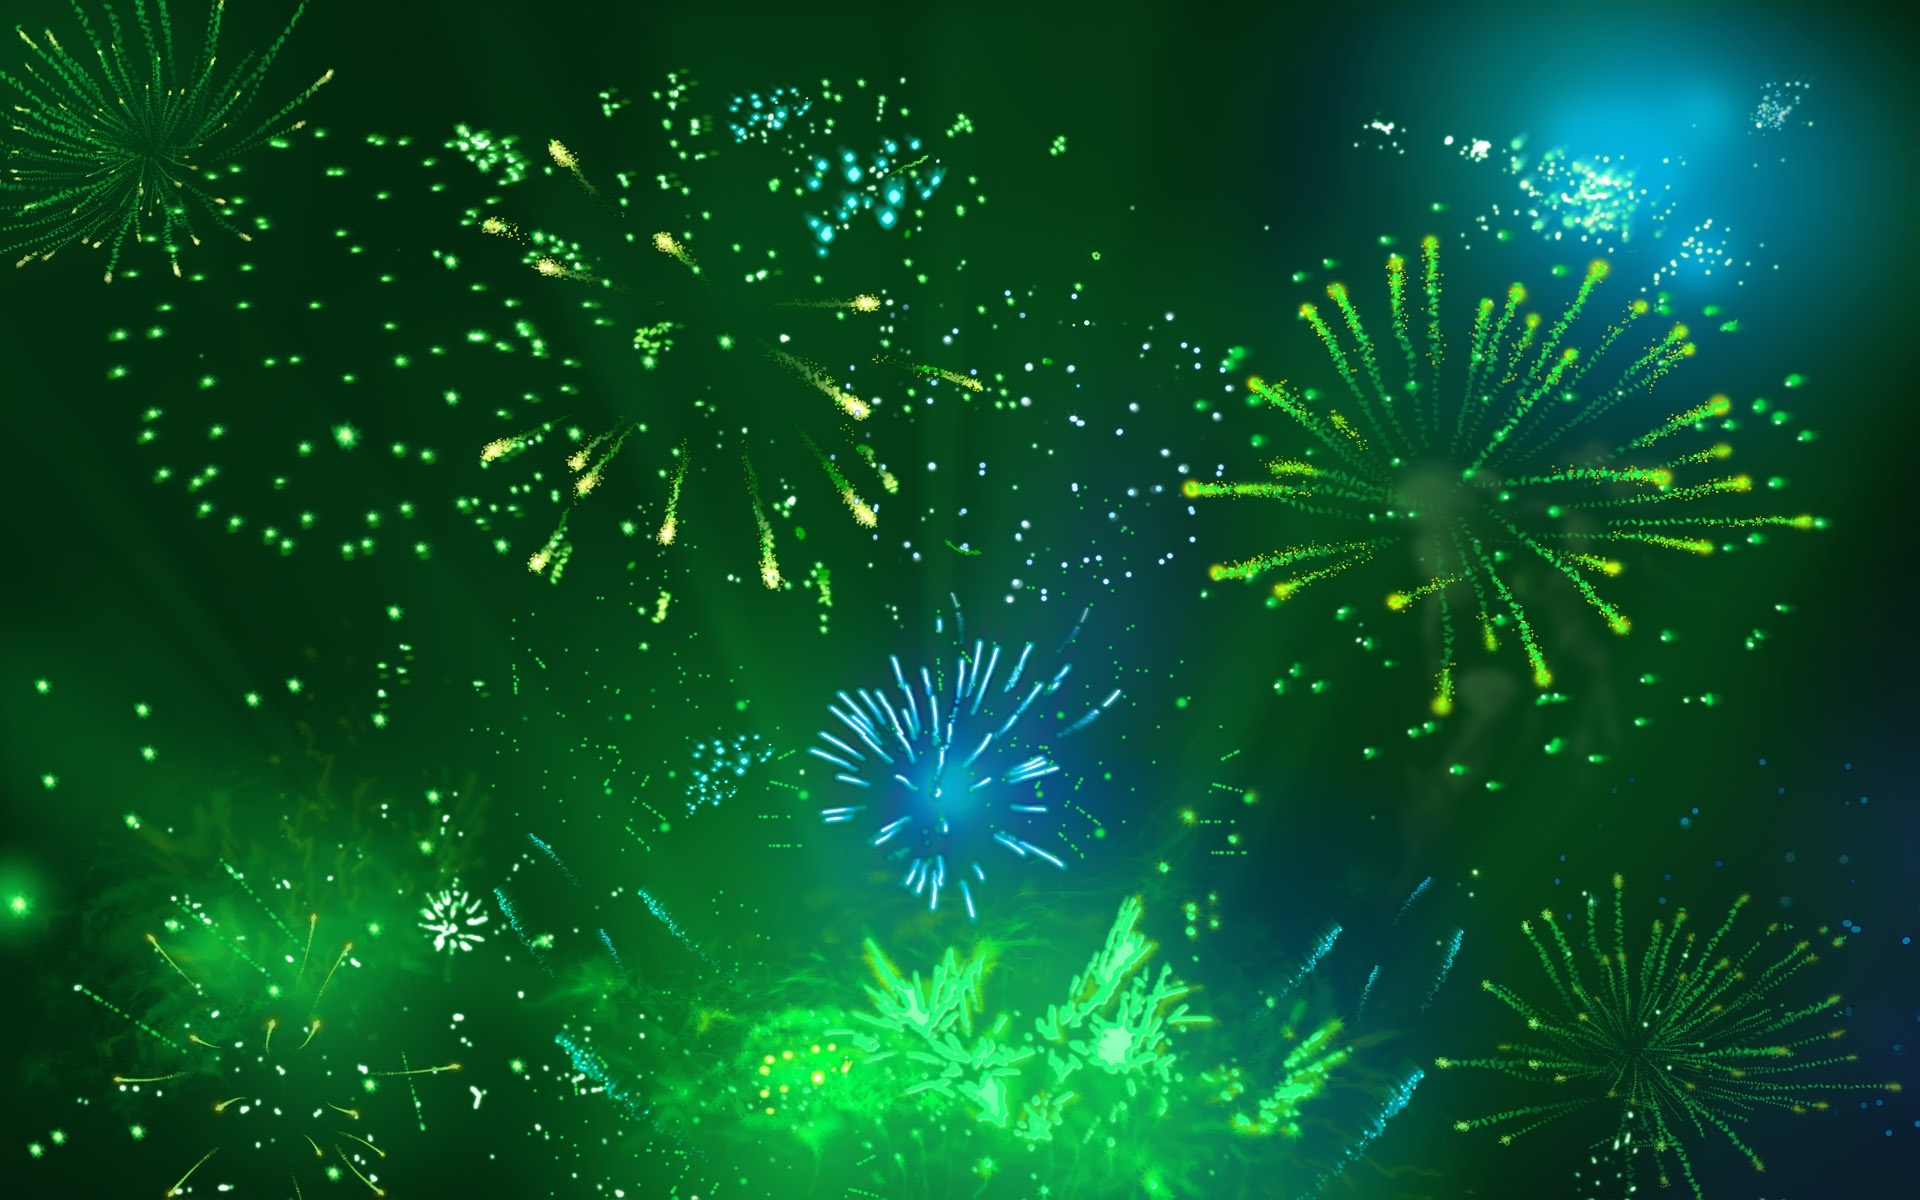 desktop wallpaper of cool green fireworks computer desktop 1920x1200